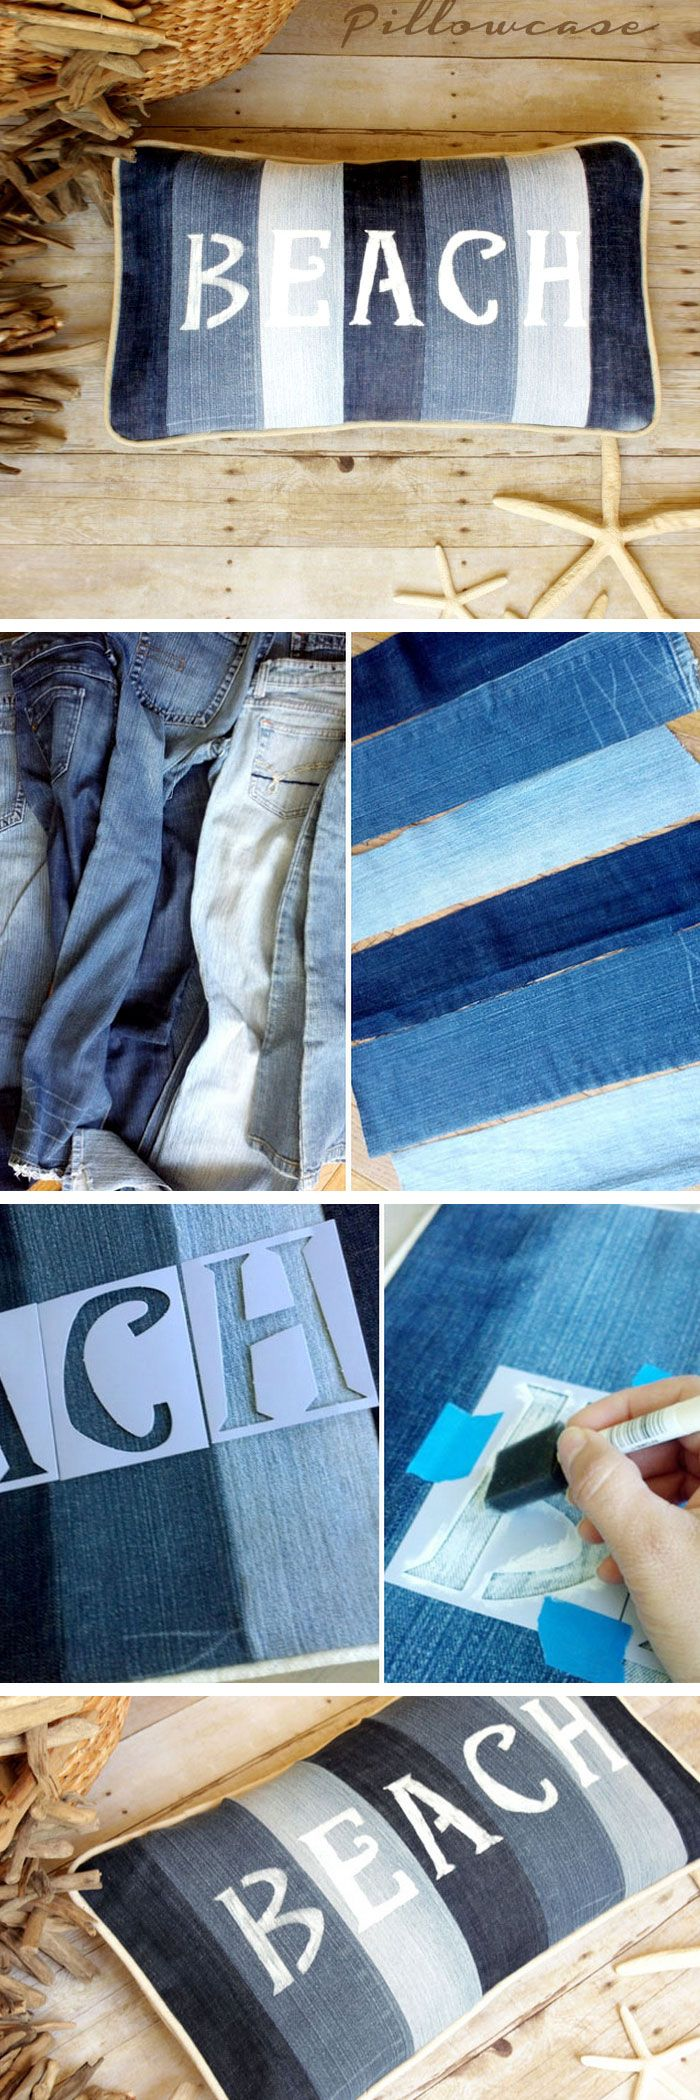 Beach Pillow from Old Jeans | Click Pic for 20 DIY Beach Decorating Ideas for Bedroom | DIY Coastal Decorating Ideas for the Home | Nautical Decor Ideas